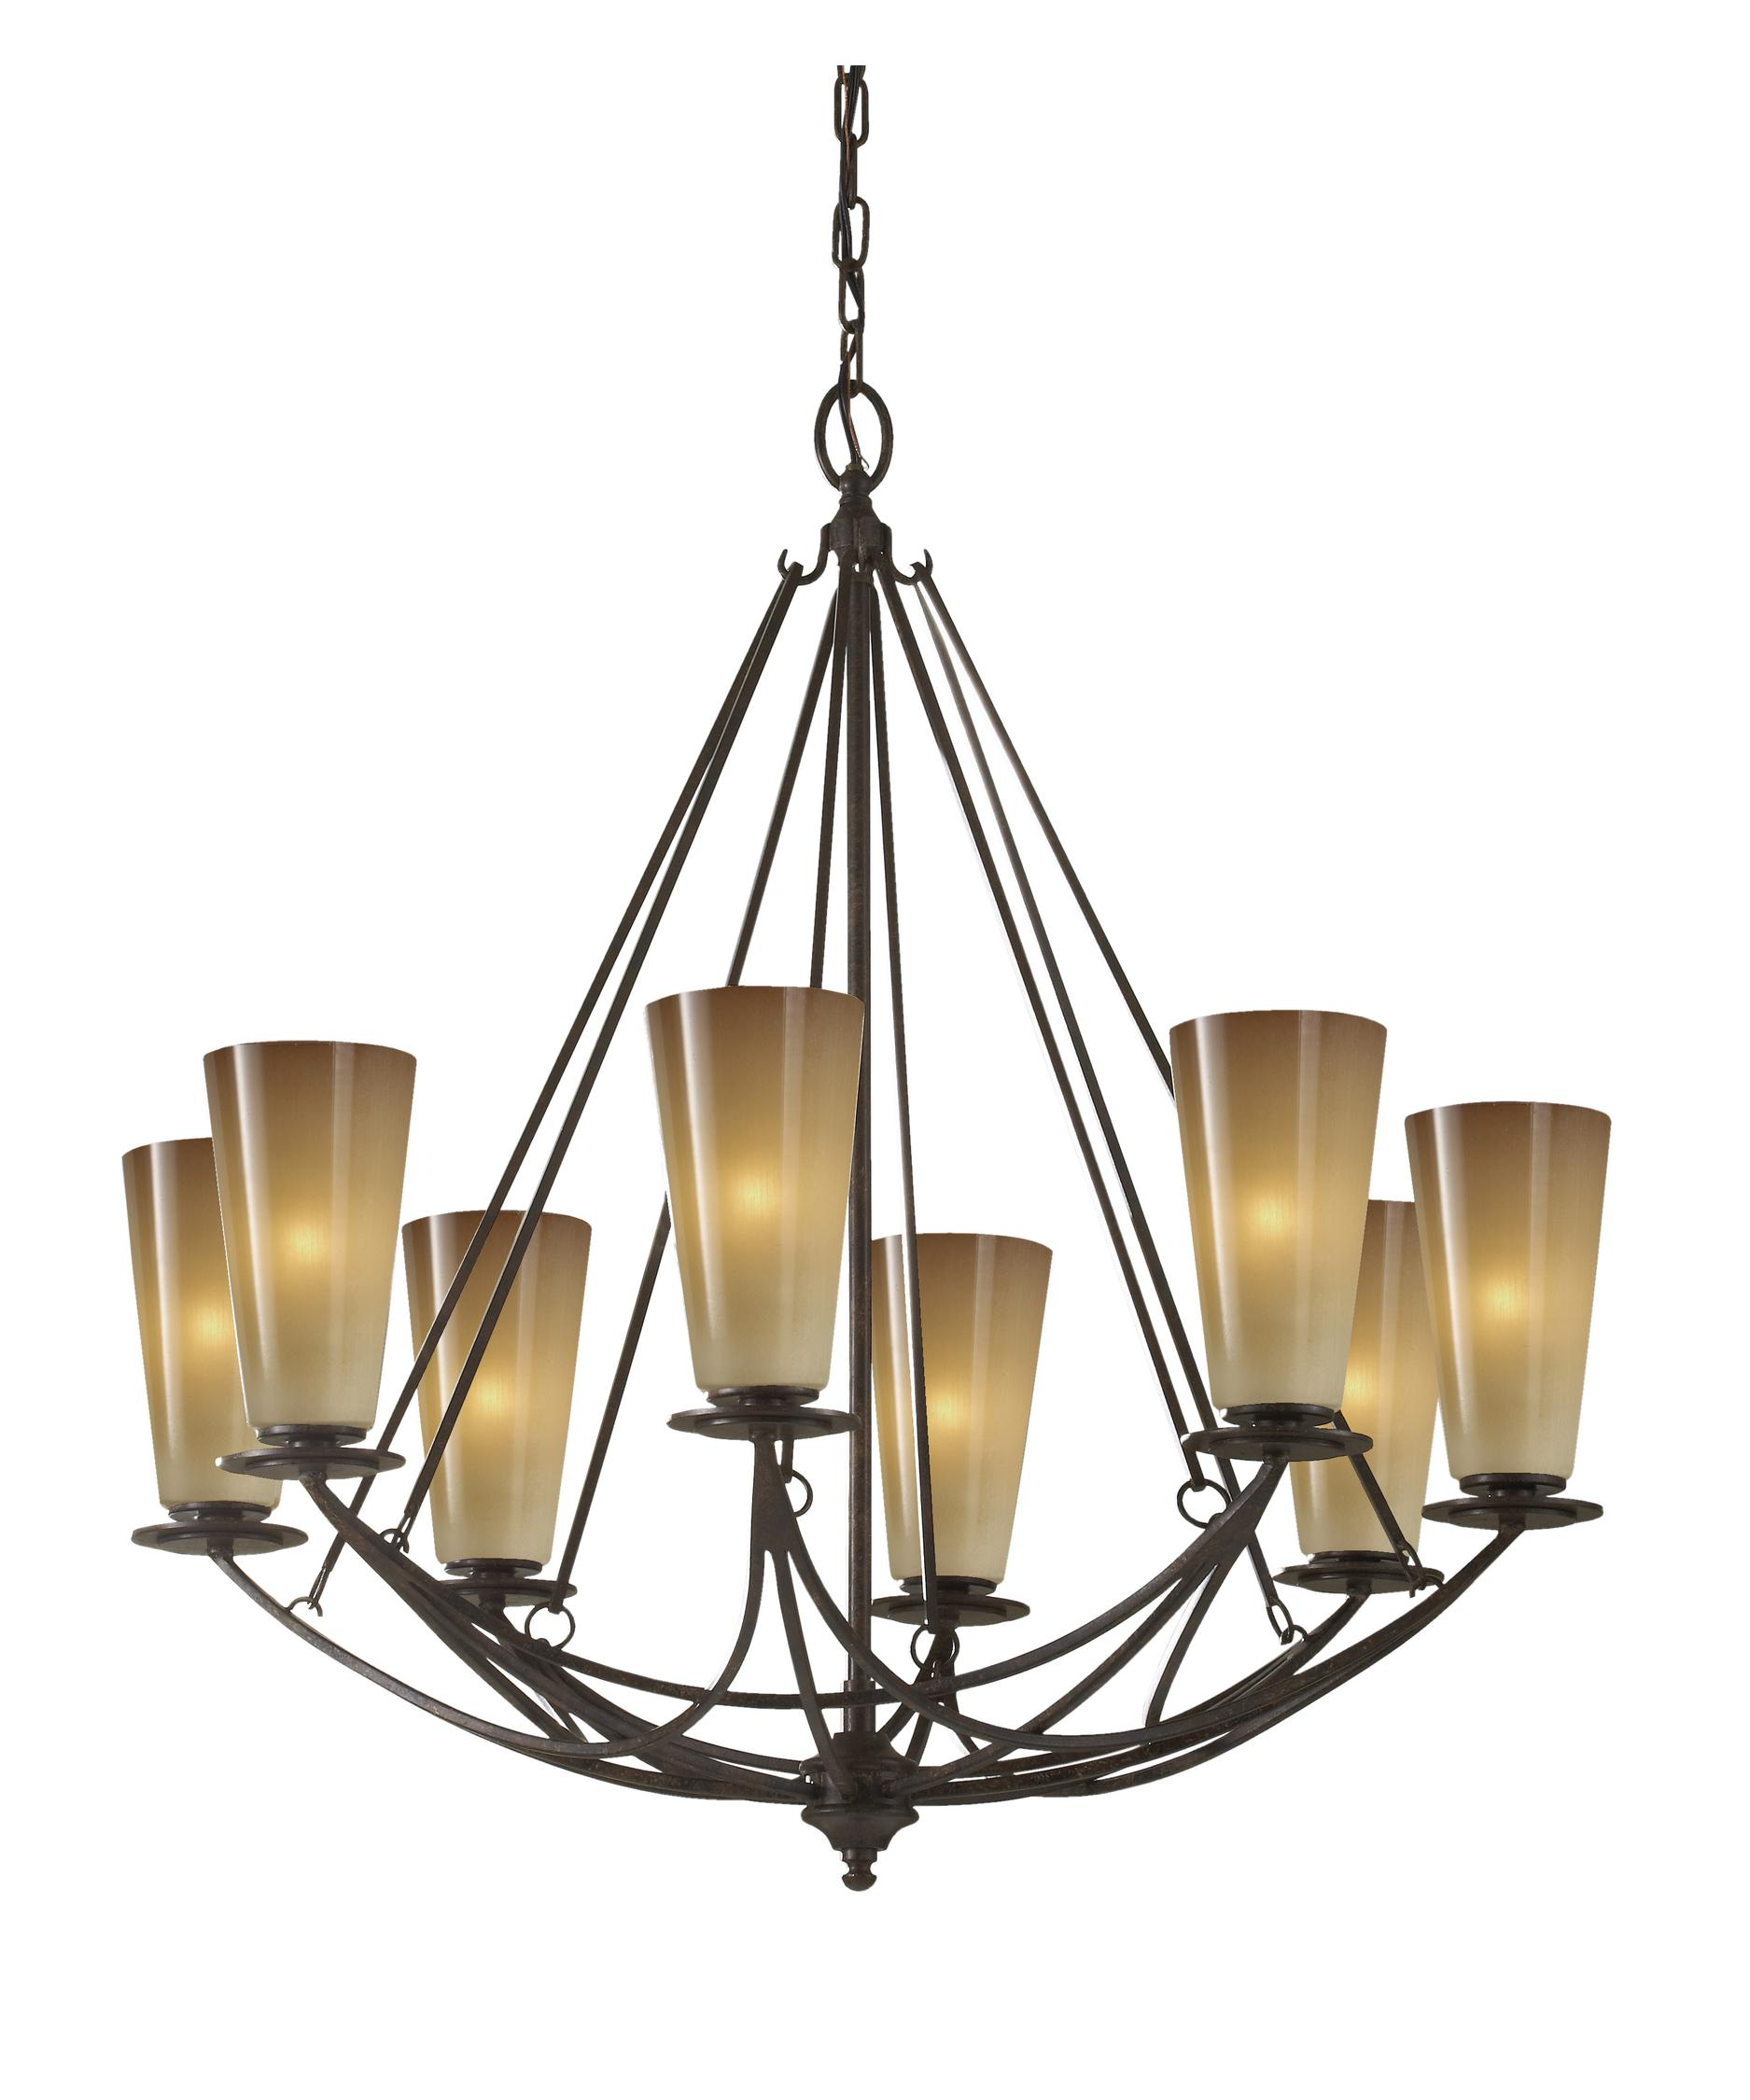 Murray Feiss El Nido 28 Inch Wide 8 Light Chandelier | Capitol ...